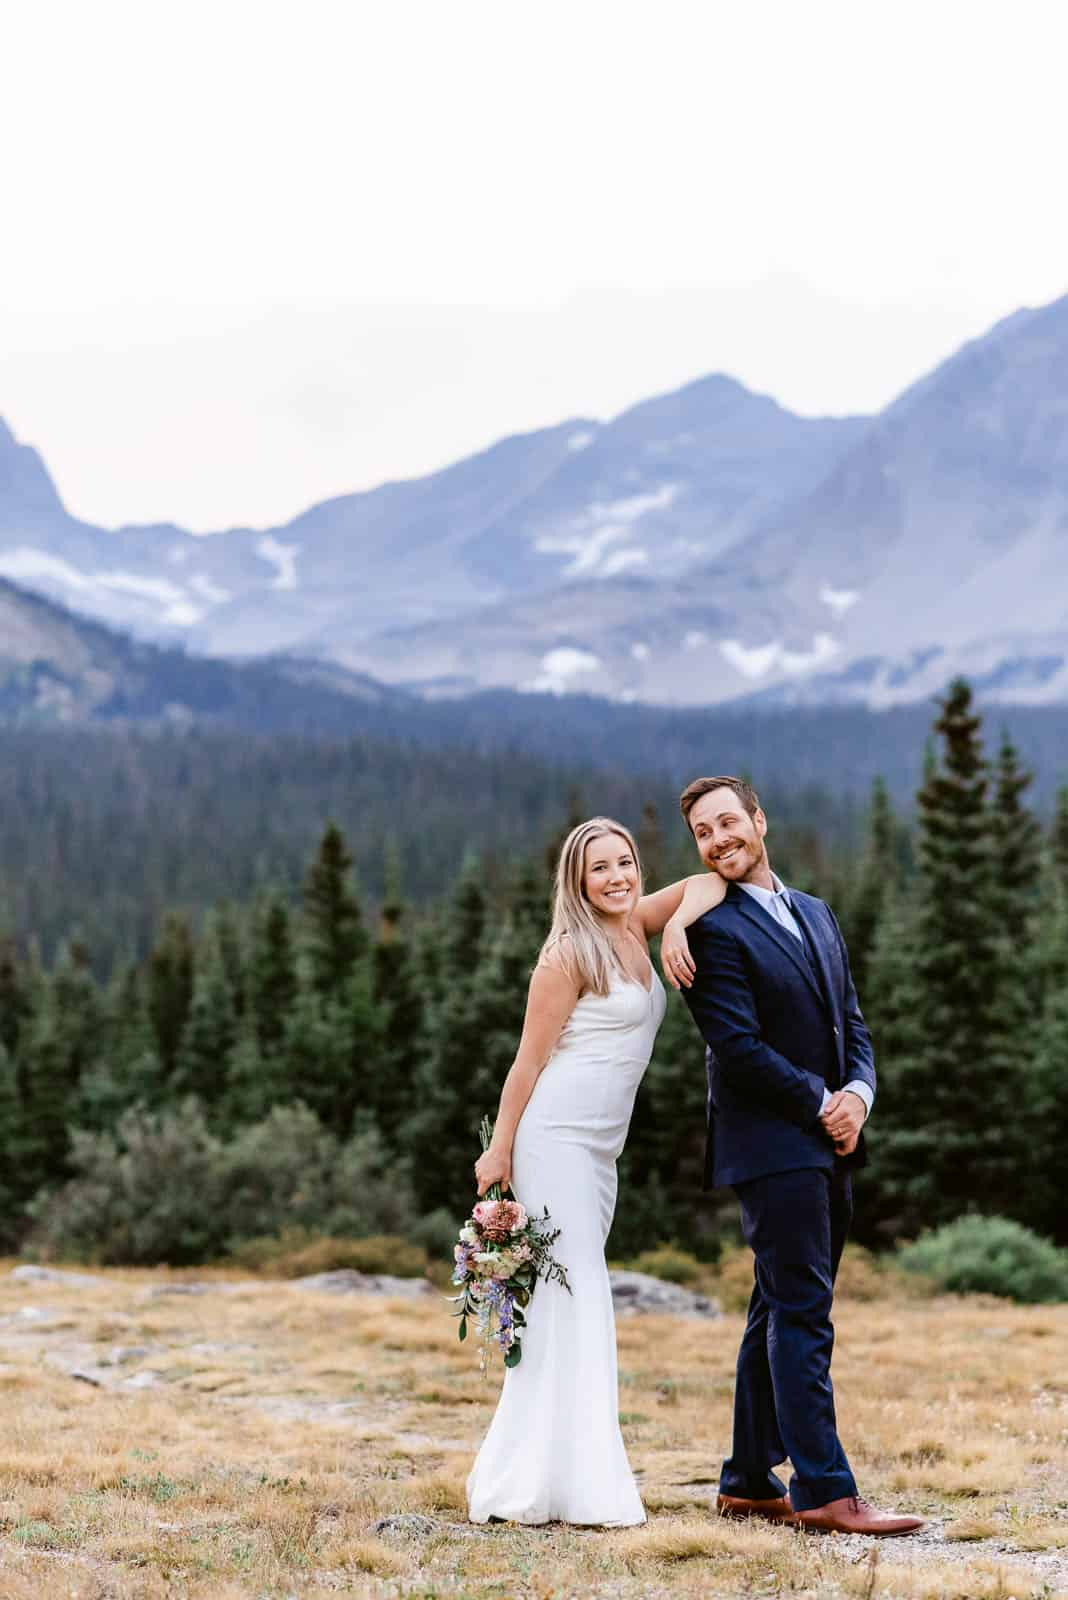 Best Elopement Locations Colorado | Josie V Photography